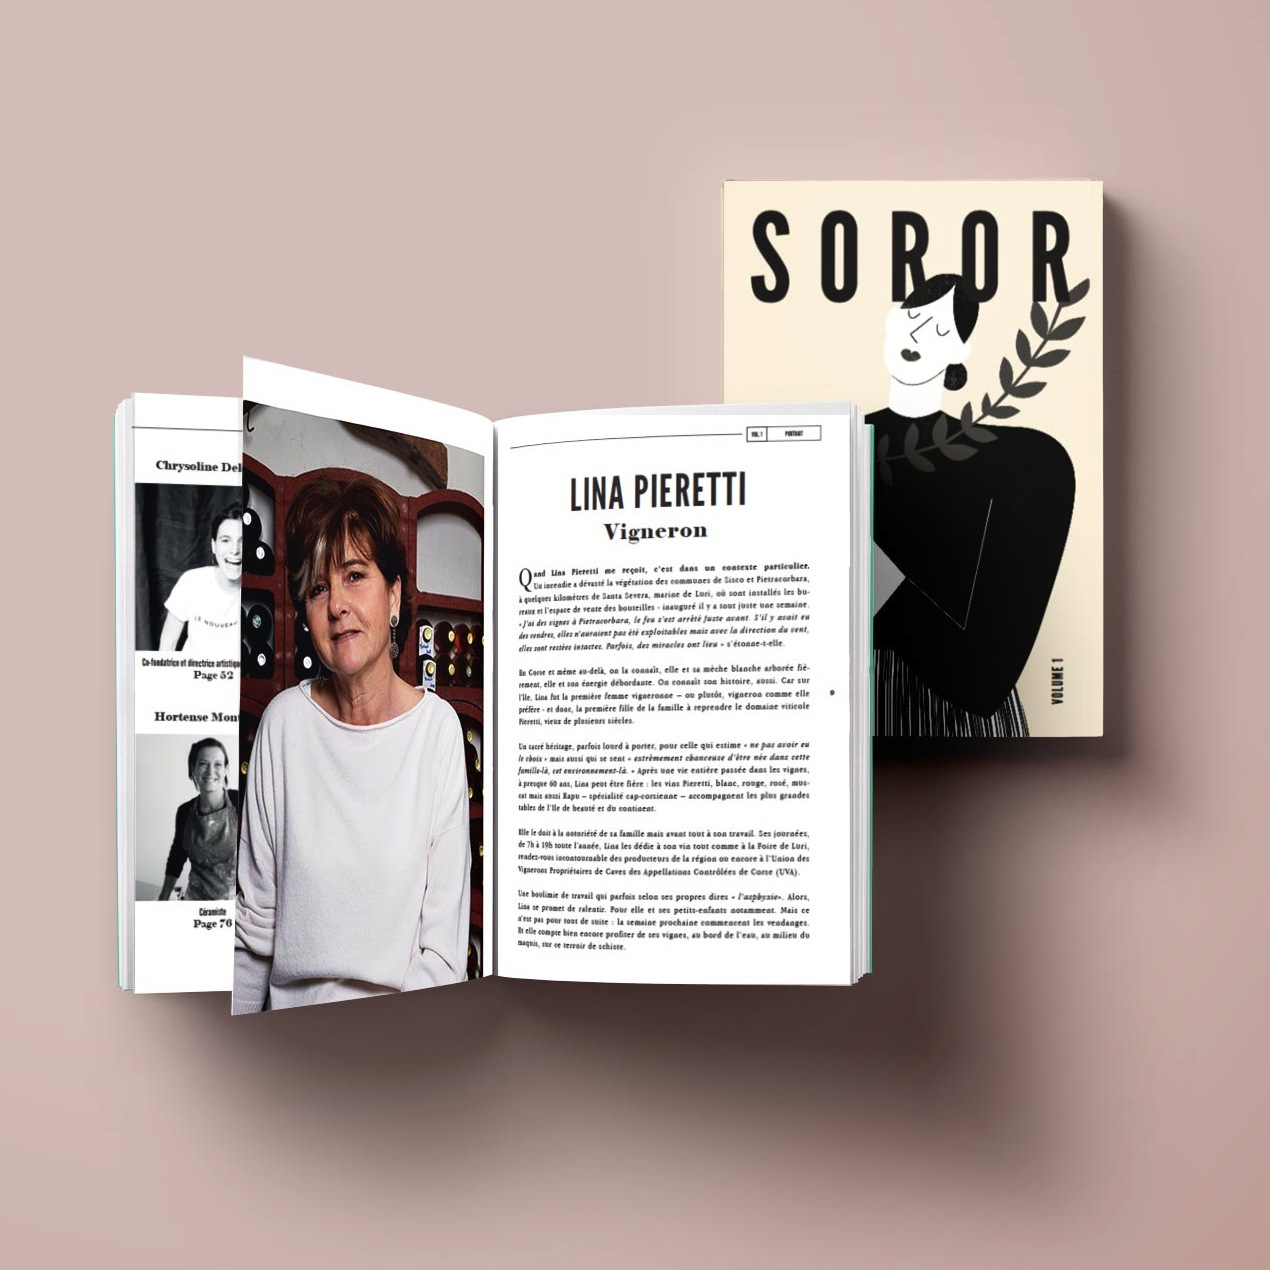 revue soror couverture pages lina pieretti